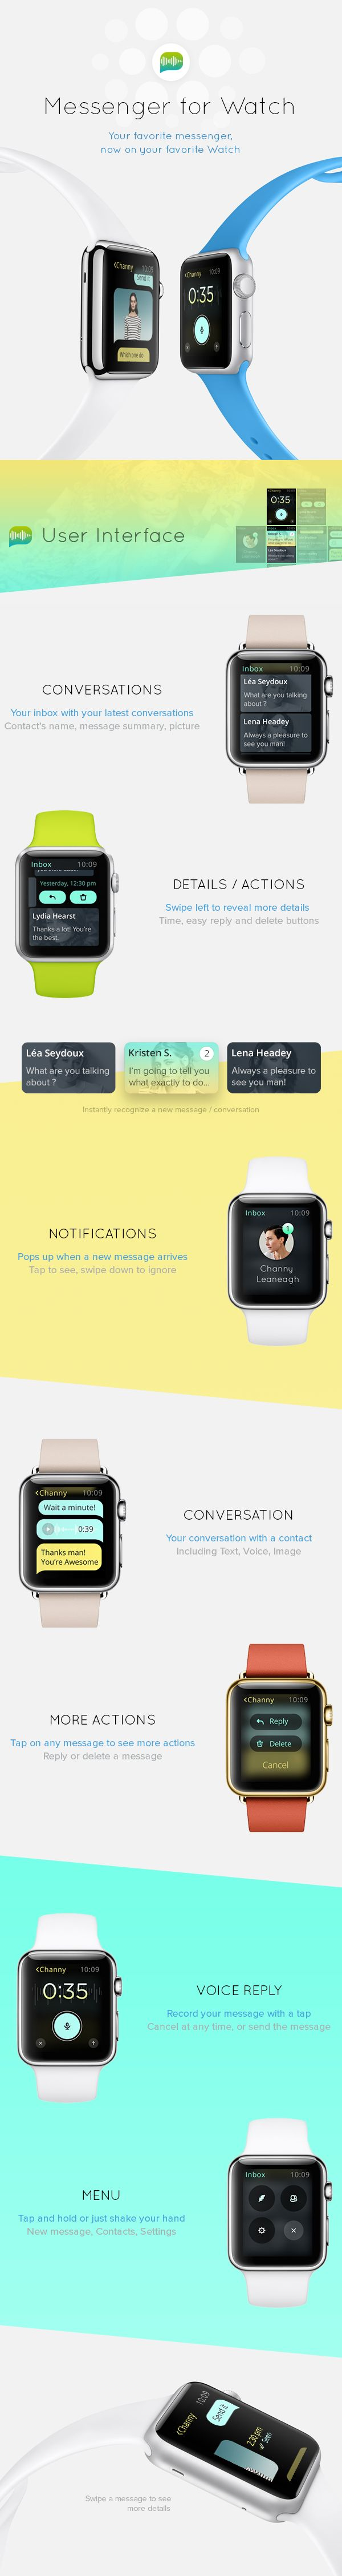 Messenger for Apple Watch by Ehsan Rahimi on #Behance #ui #interaction #animation #watch #applewatch #web #website #landingpage #ios #app